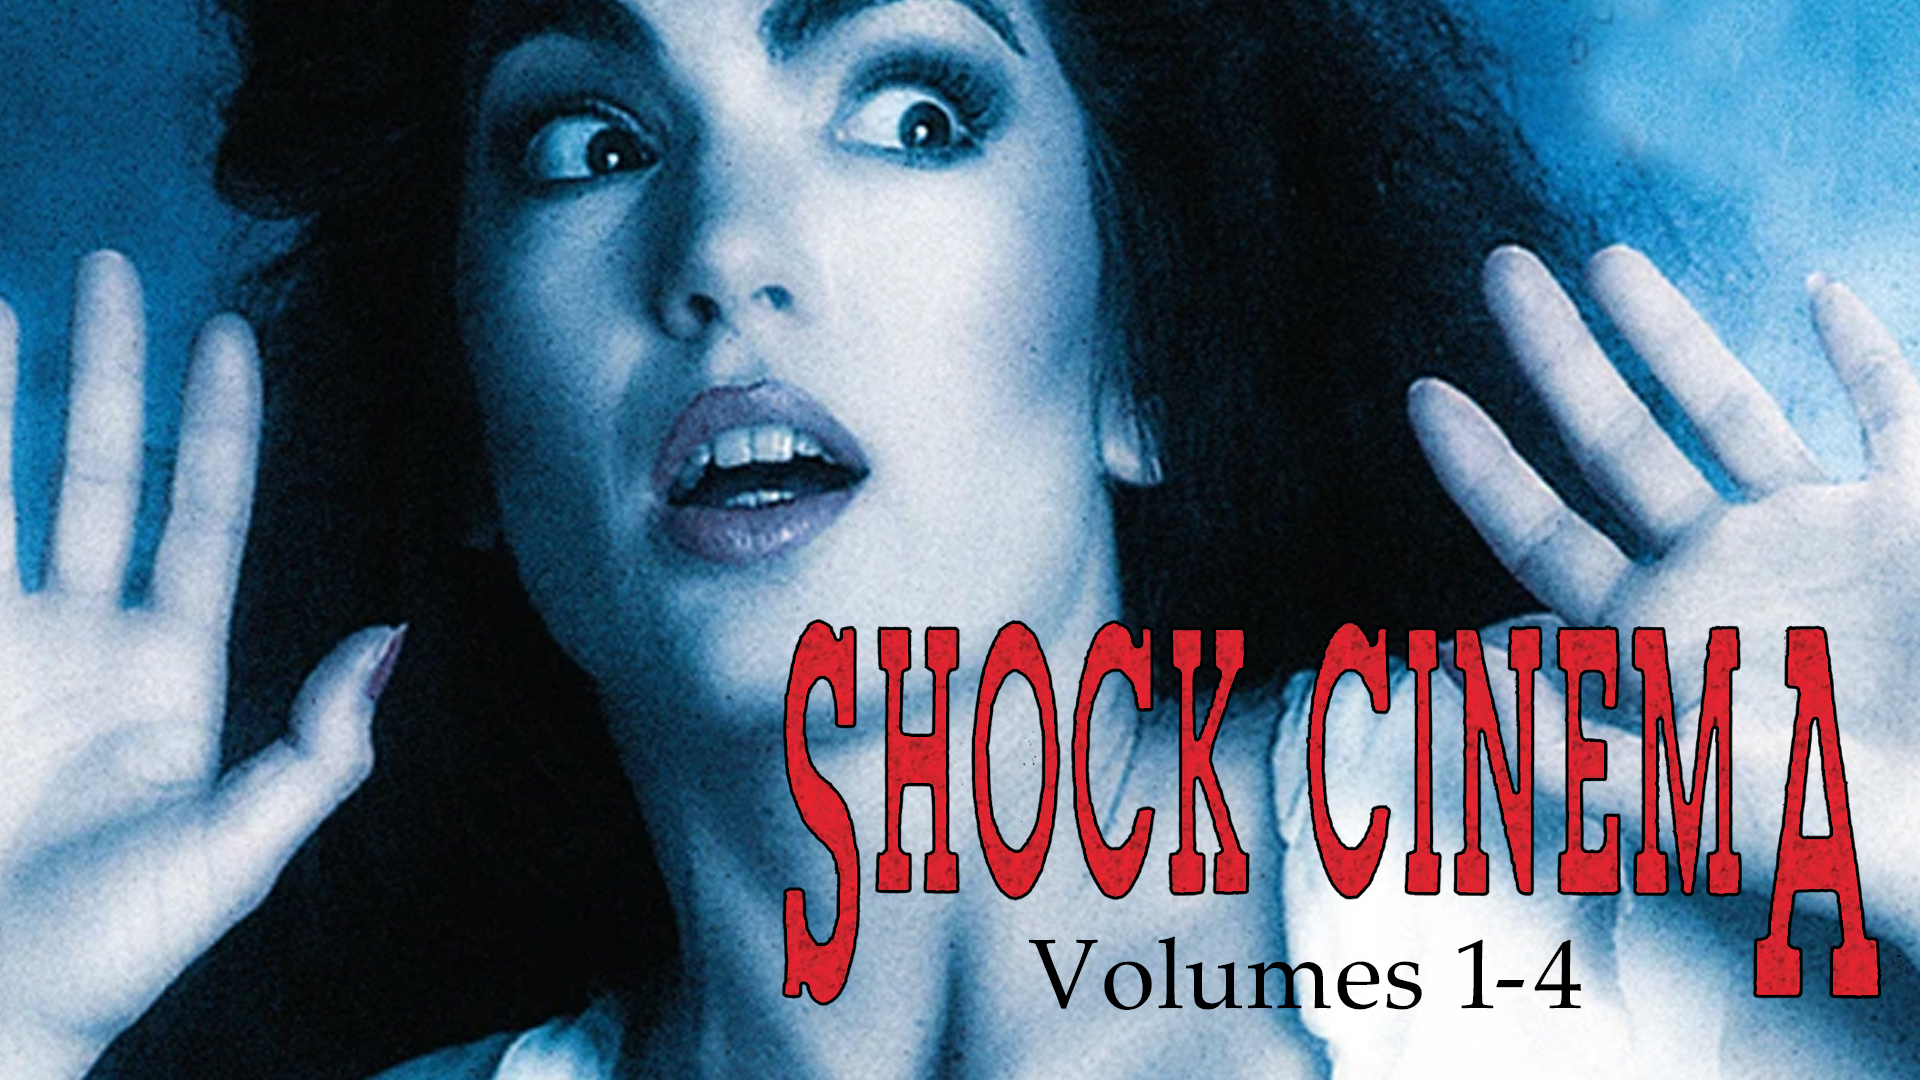 Shock Cinema Volume 1-4 banner image